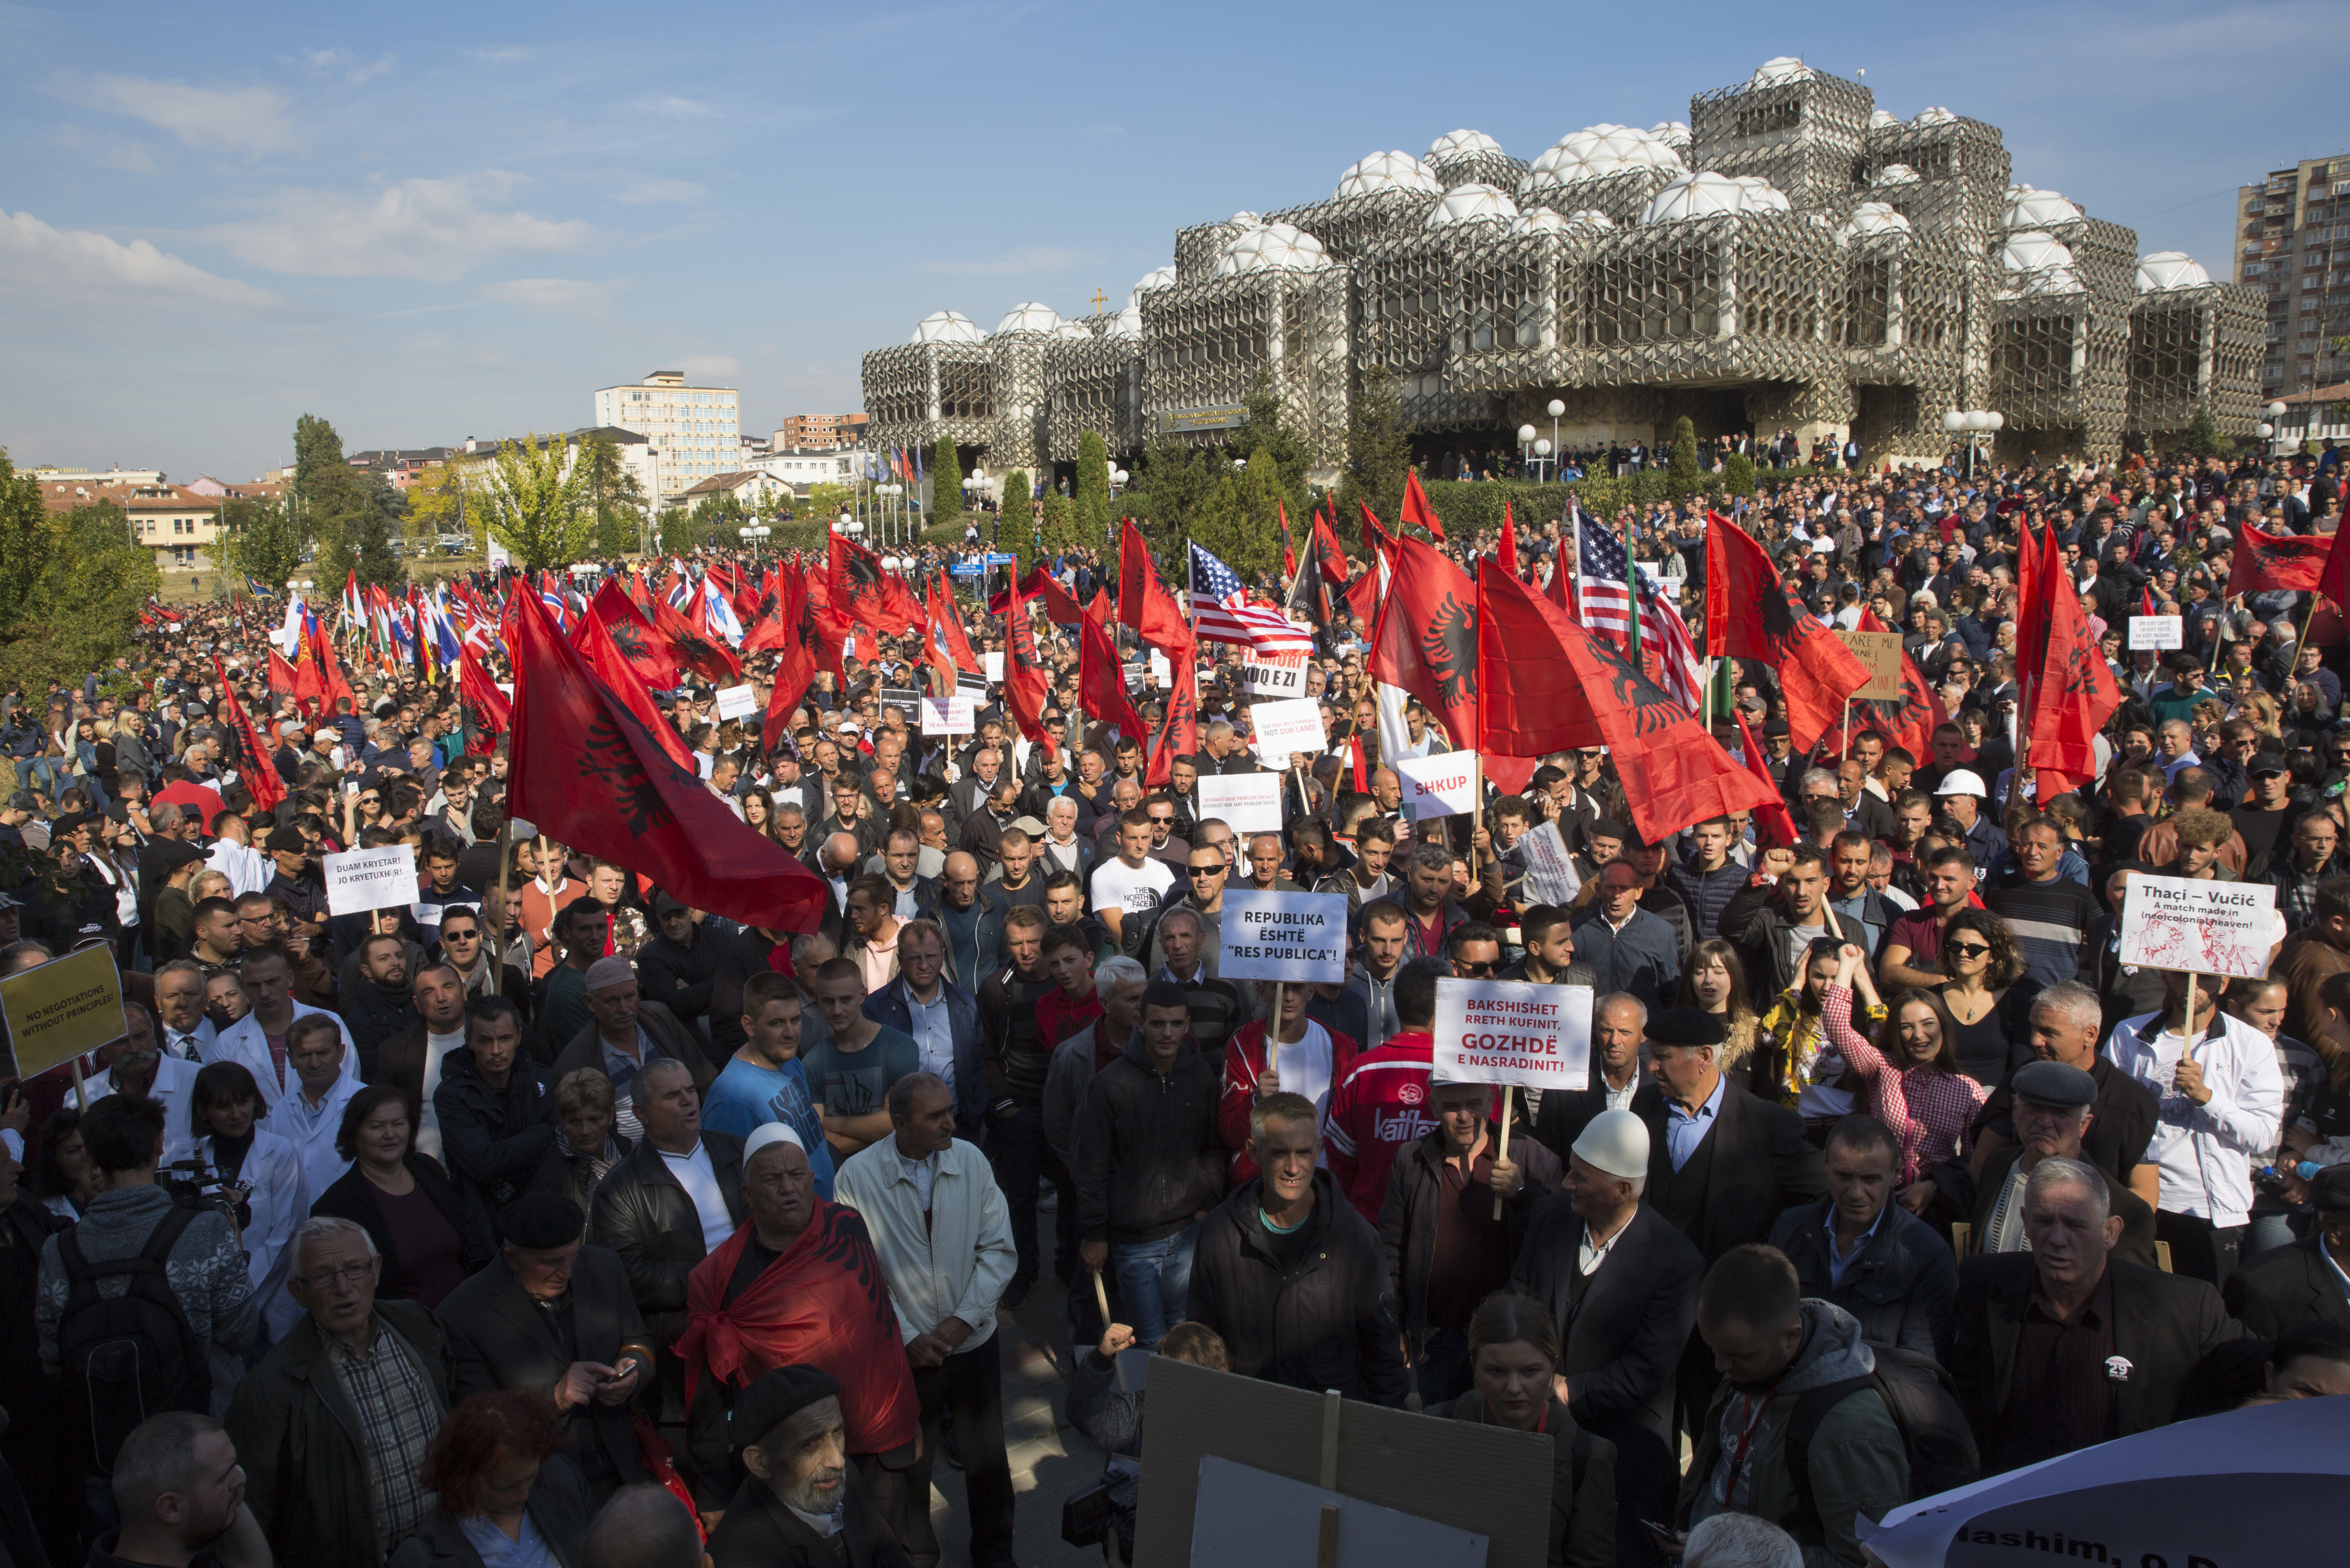 Thousands of supporters of Kosovo's opposition Self-Determination party hold banners and national Albanian flags as they march through the capital city of Pristina toward Skanderbeg Square on Saturday, Sept. 29, 2018. Thousands of people in Kosovo are protesting their president's willingness to include a possible territory swap with Serbia in the ongoing negotiations to normalize relations between the two countries.(AP Photo/Visar Kryeziu)